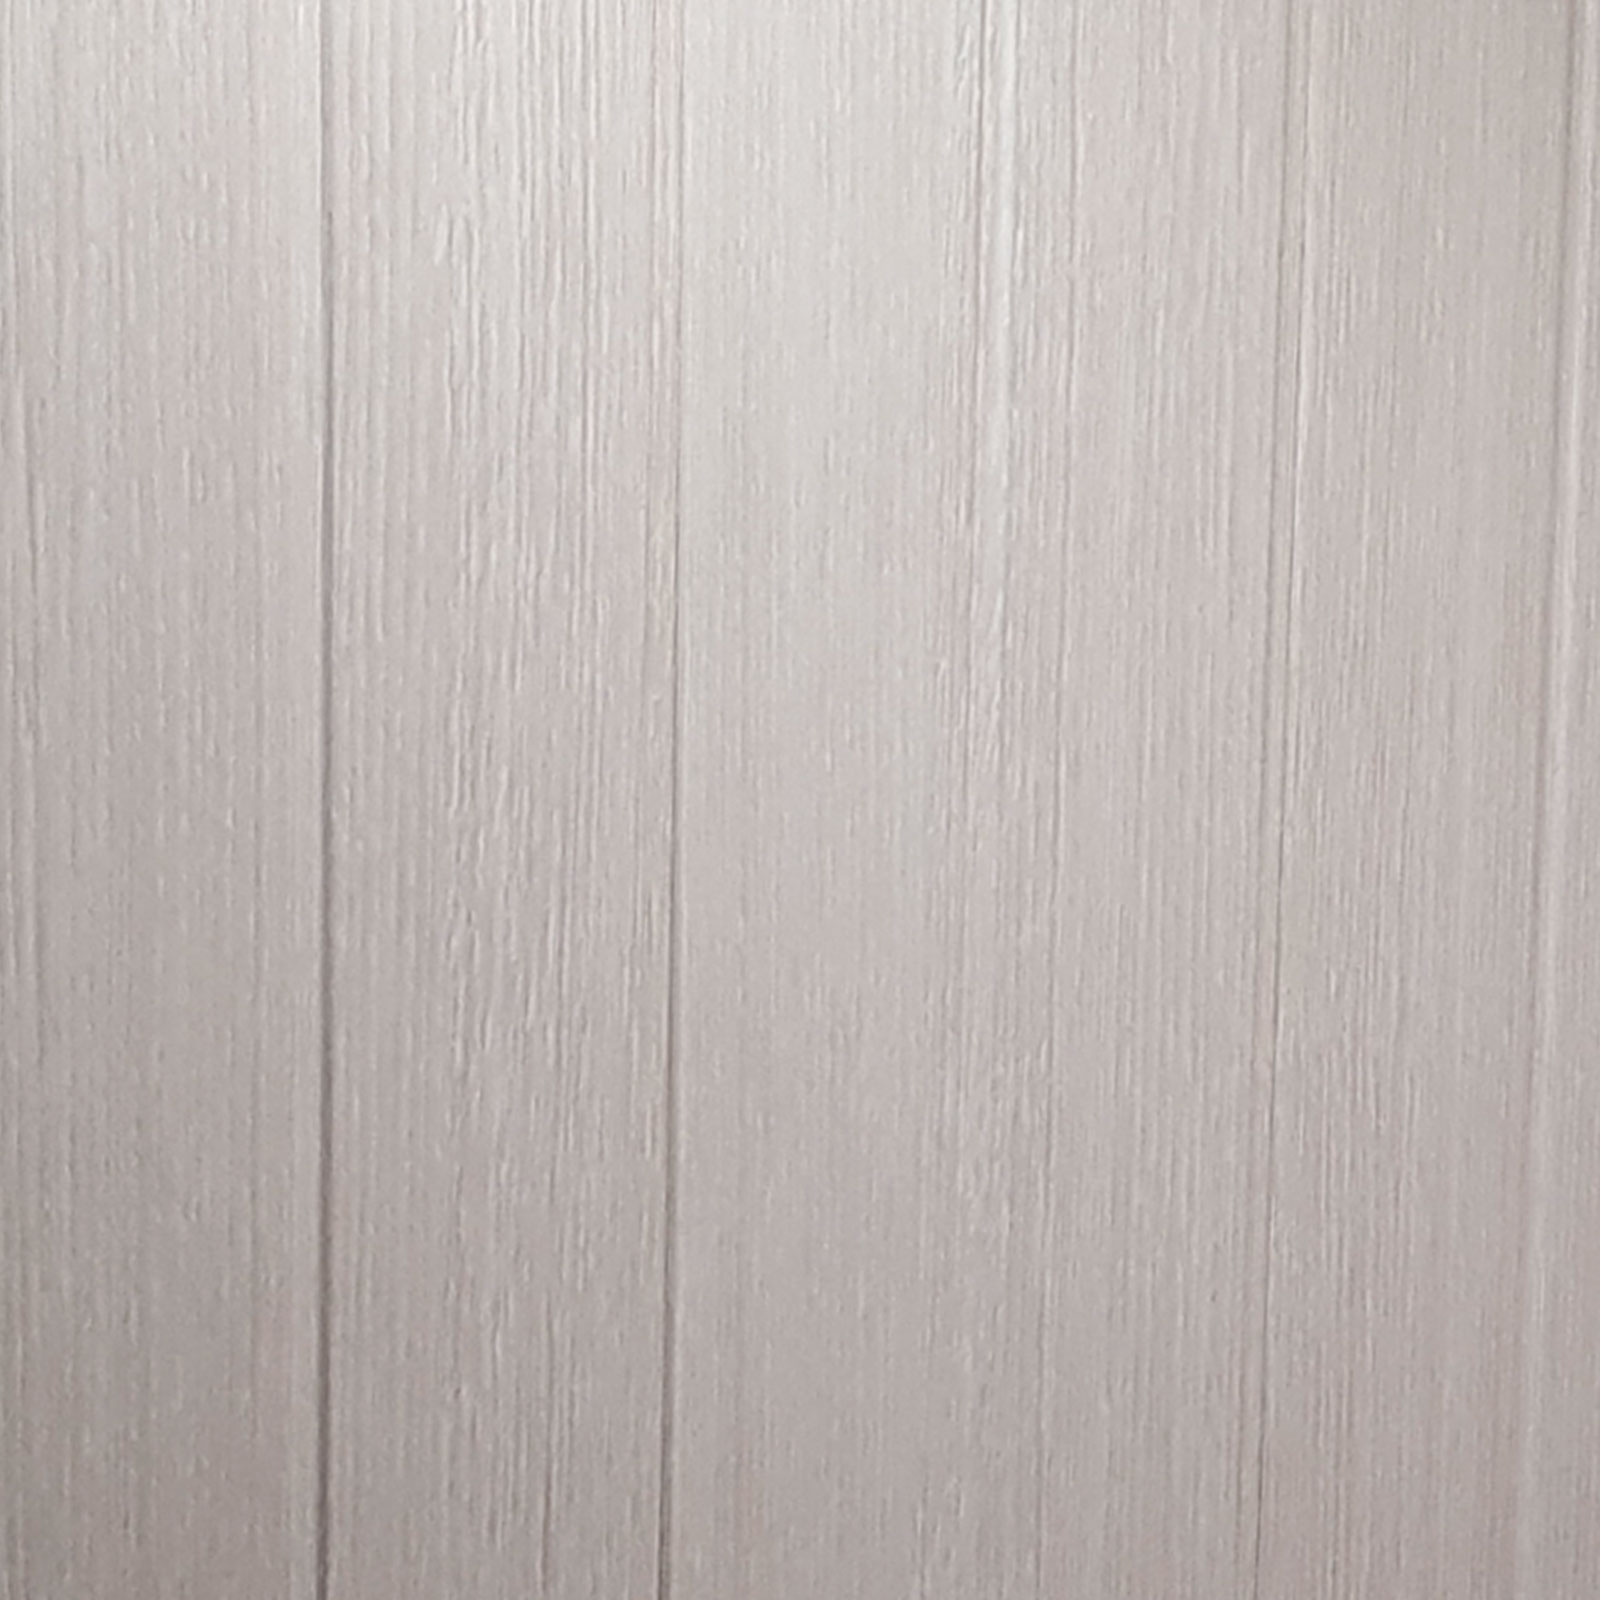 Grey Bathroom Cladding Grey Wood Bathroom Cladding Store